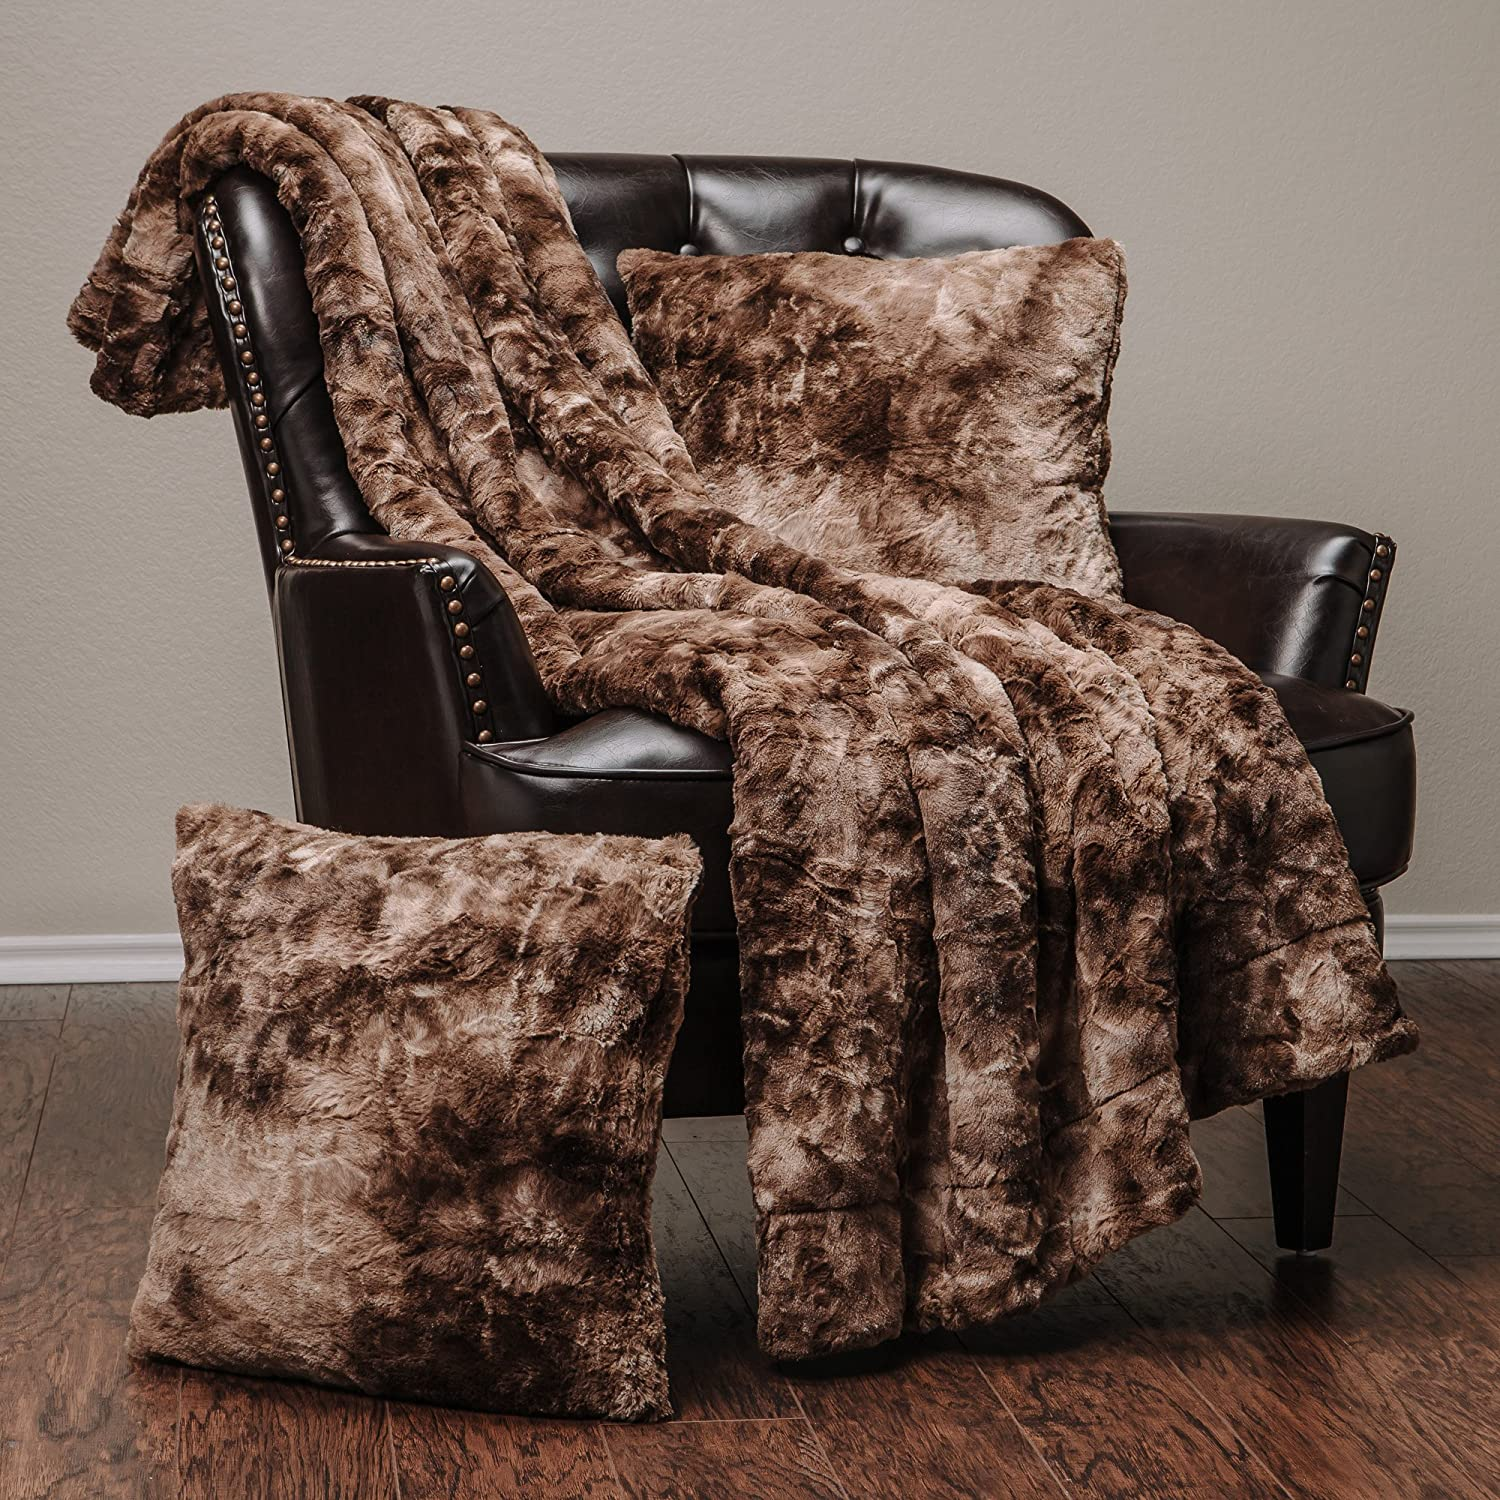 Chanasya 3-Piece Faux Fur Throw Blanket Pillow Cover Set - Sherpa Throw (50x65 Inches) 2 Throw Pillow Covers (18x18 Inches) for Couch, Bed, Chair and Sofa - Chocolate